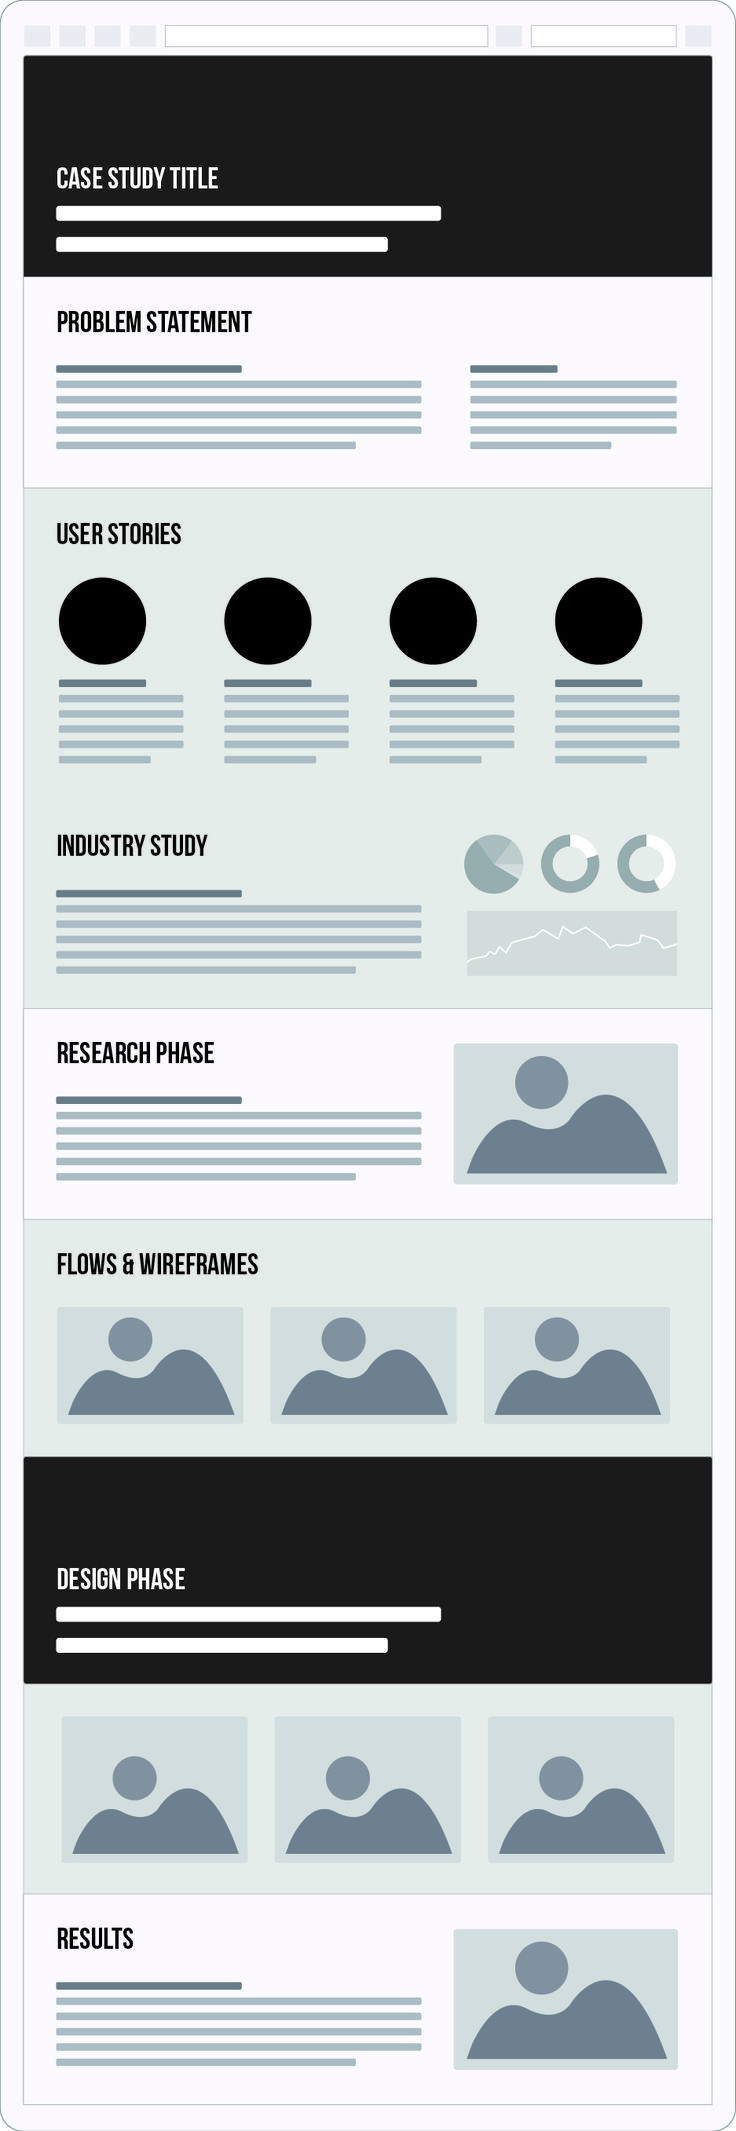 UX Case Study Wireframe Asset EPS by Ashley Porciuncula